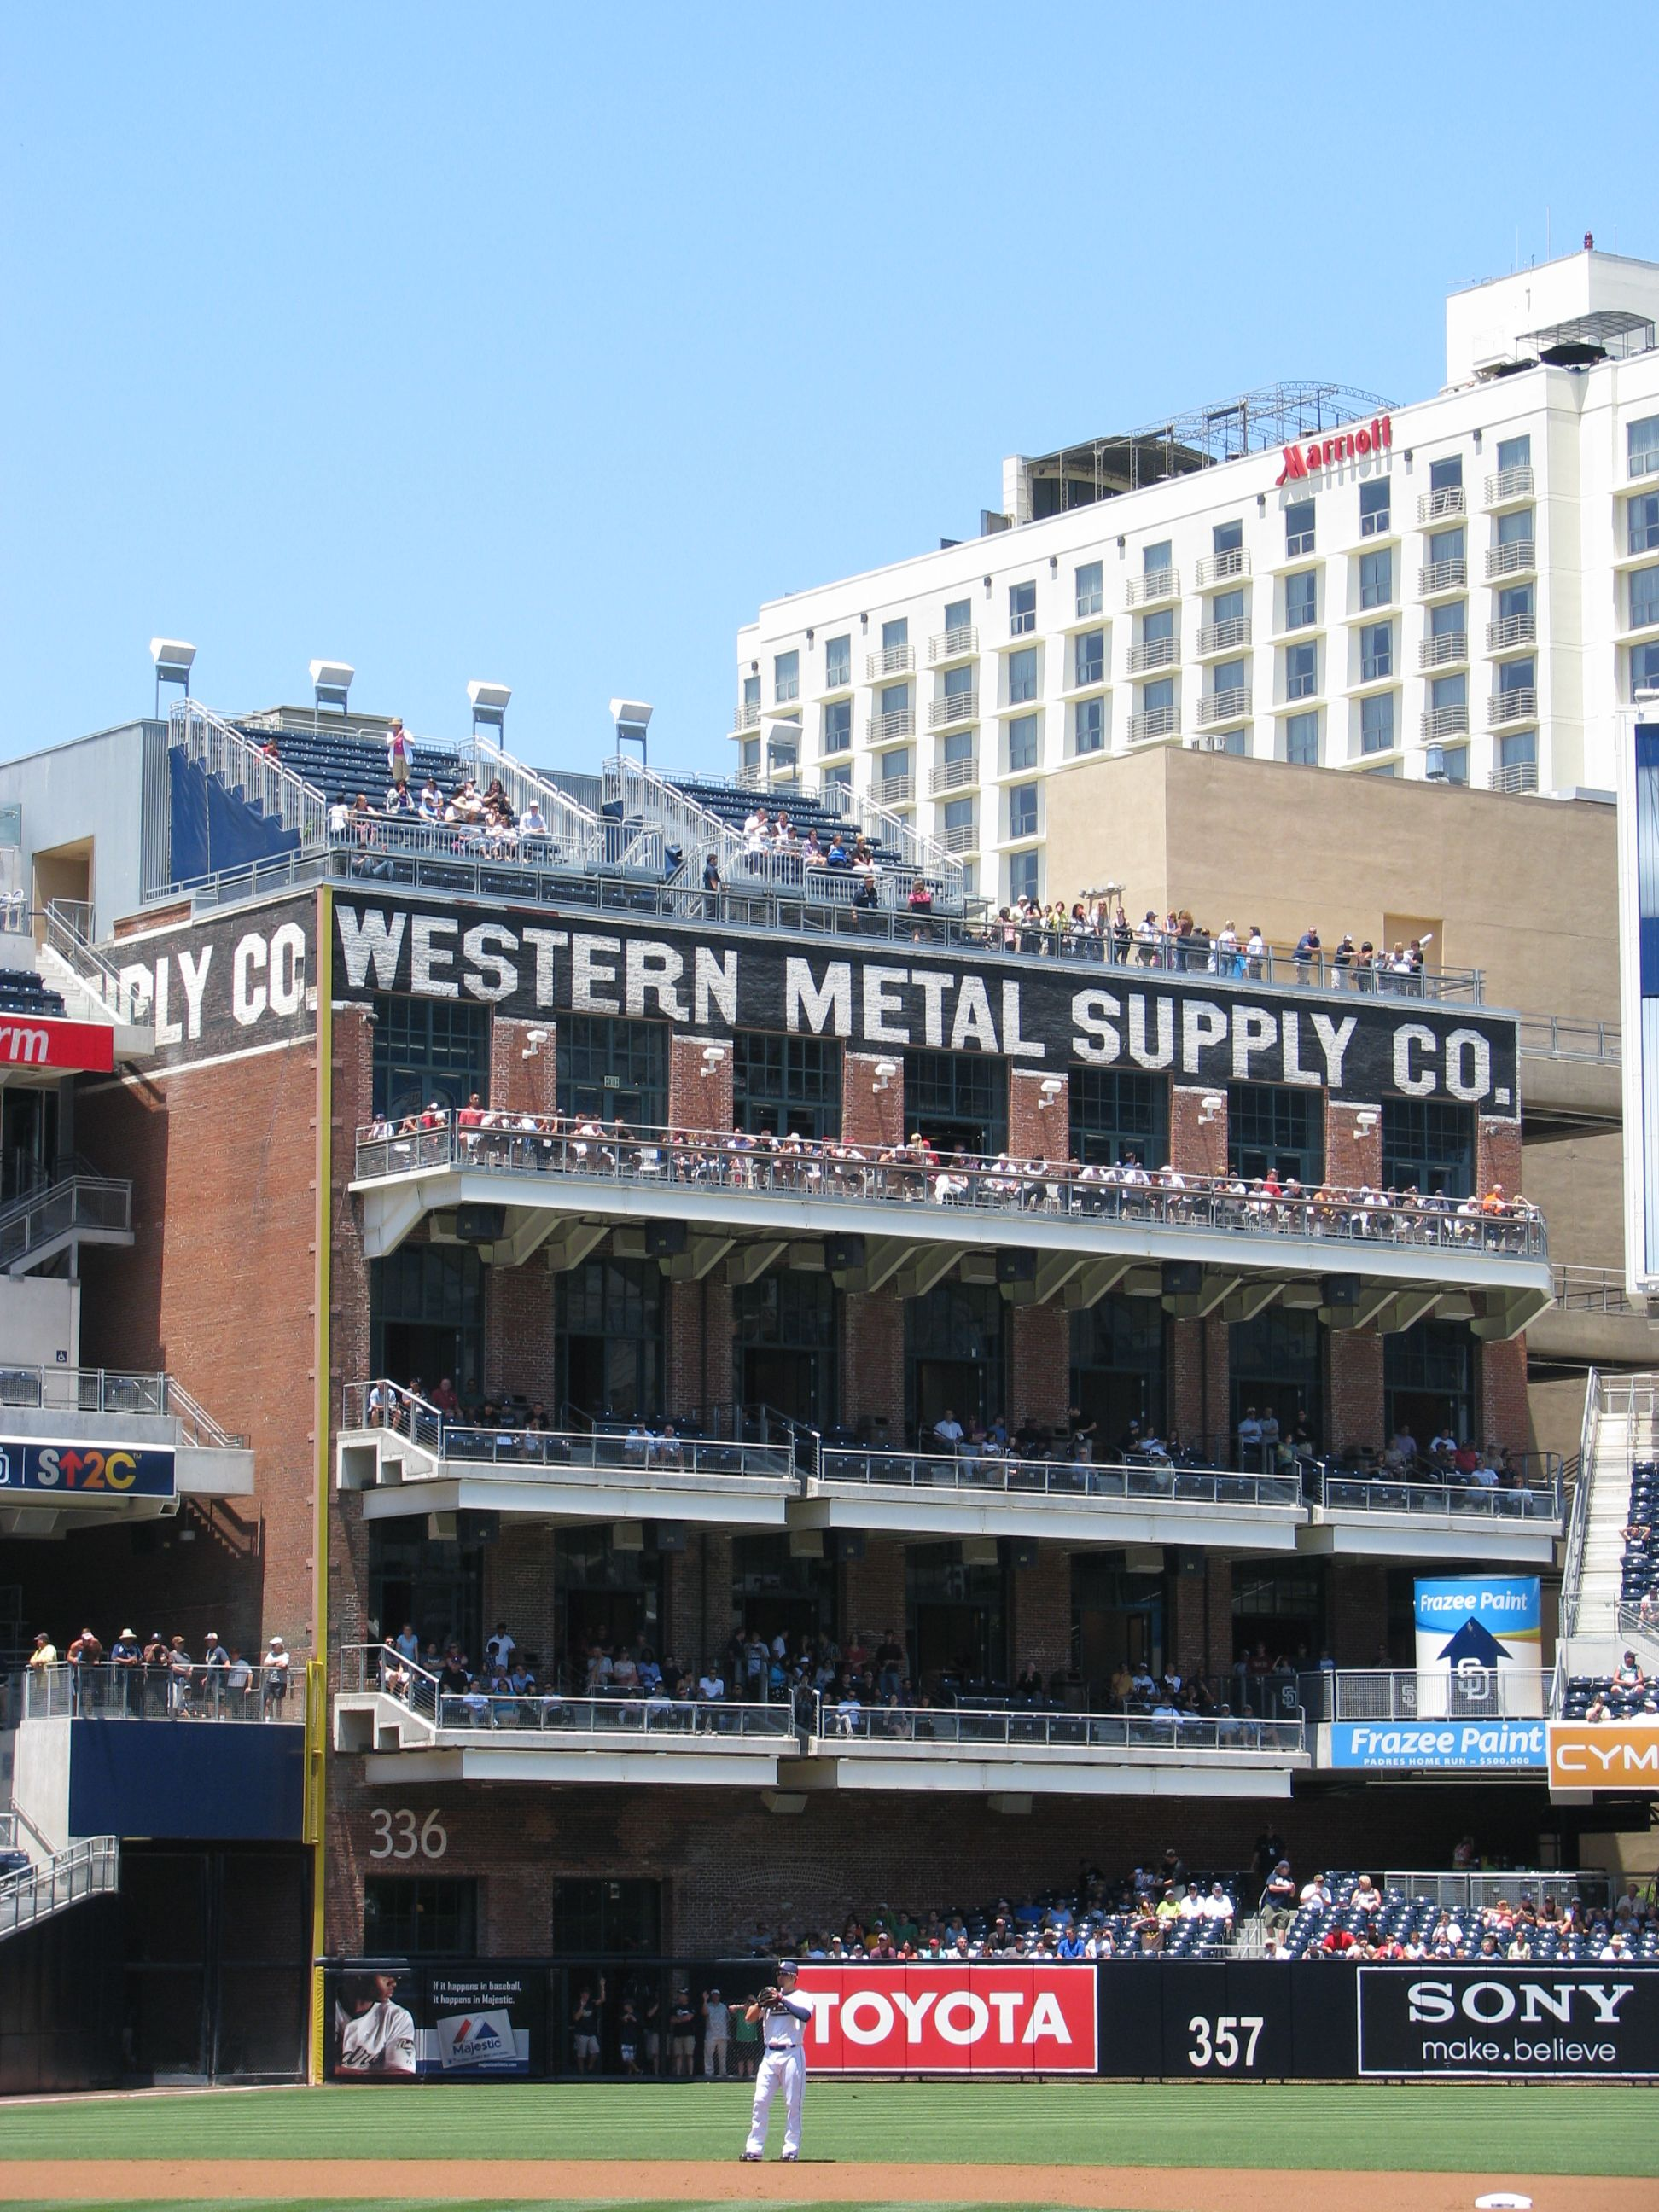 San Diego Padres Petco Park My Mom Worked At Western Metal When I Was A Little Kid My Family Were Big Padre Fans Mo Baseball Park Petco Park Mlb Stadiums